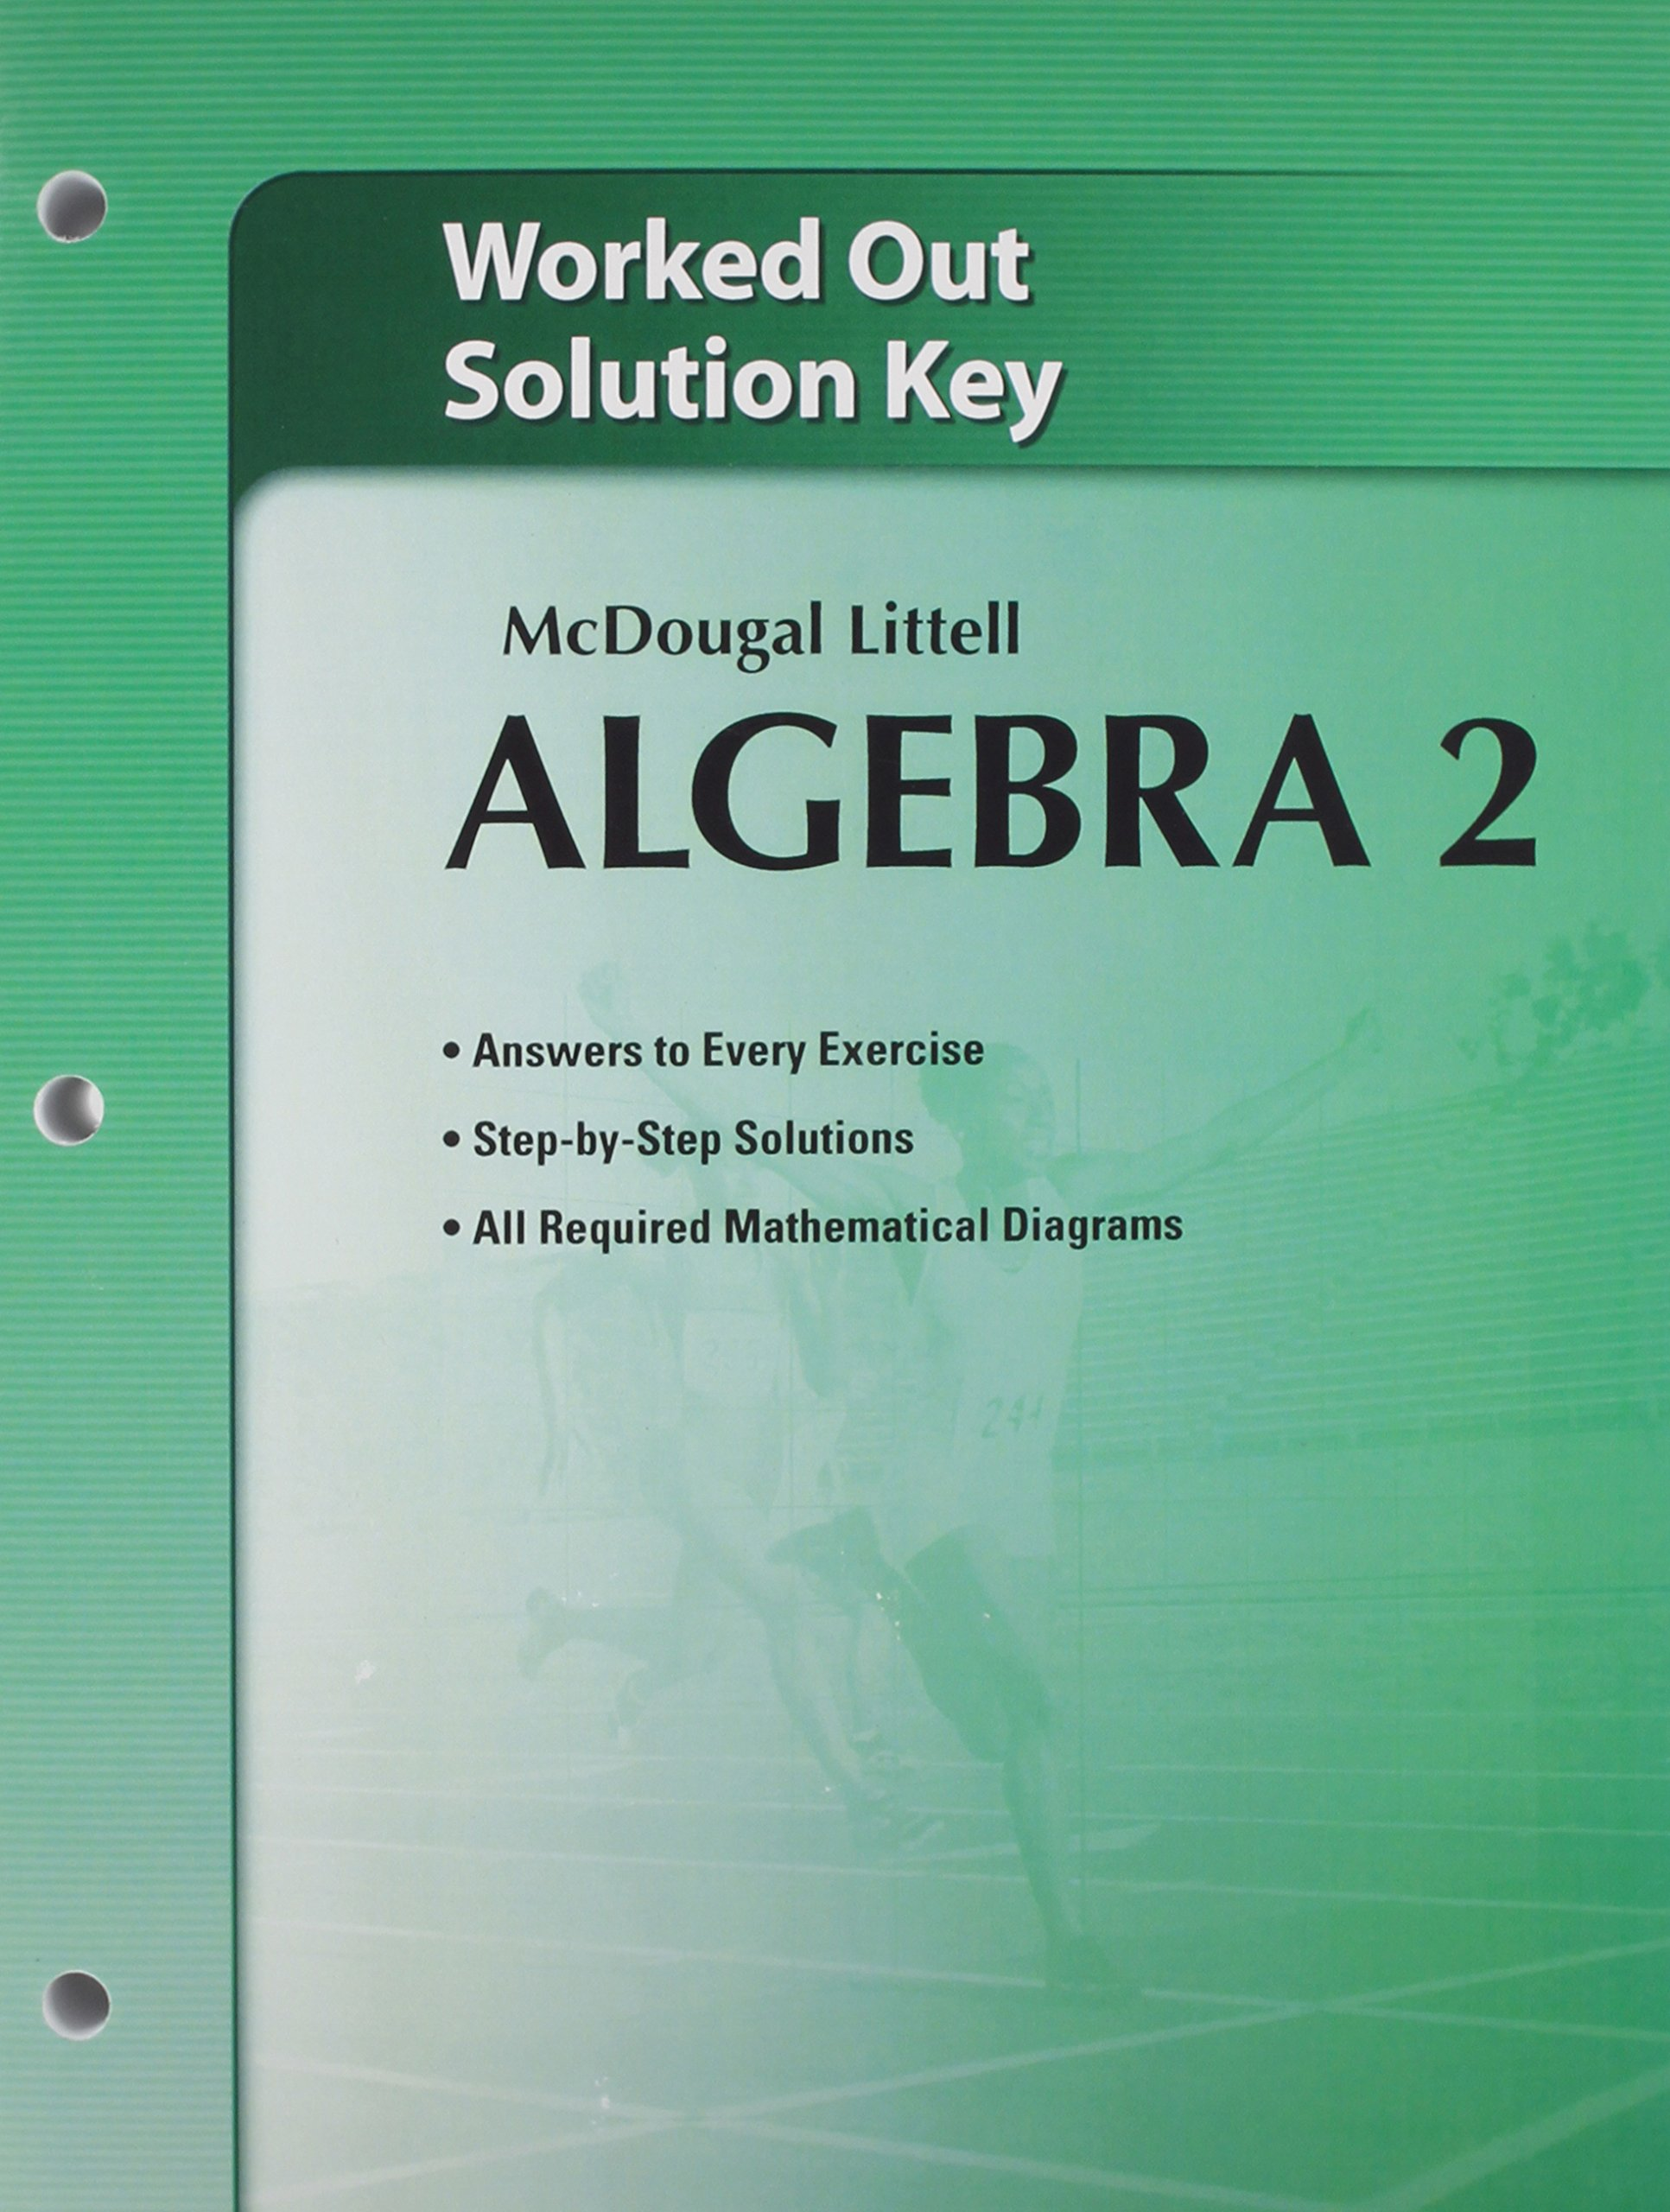 Mcdougal Littell Algebra 1 Teacher's Edition Pdf